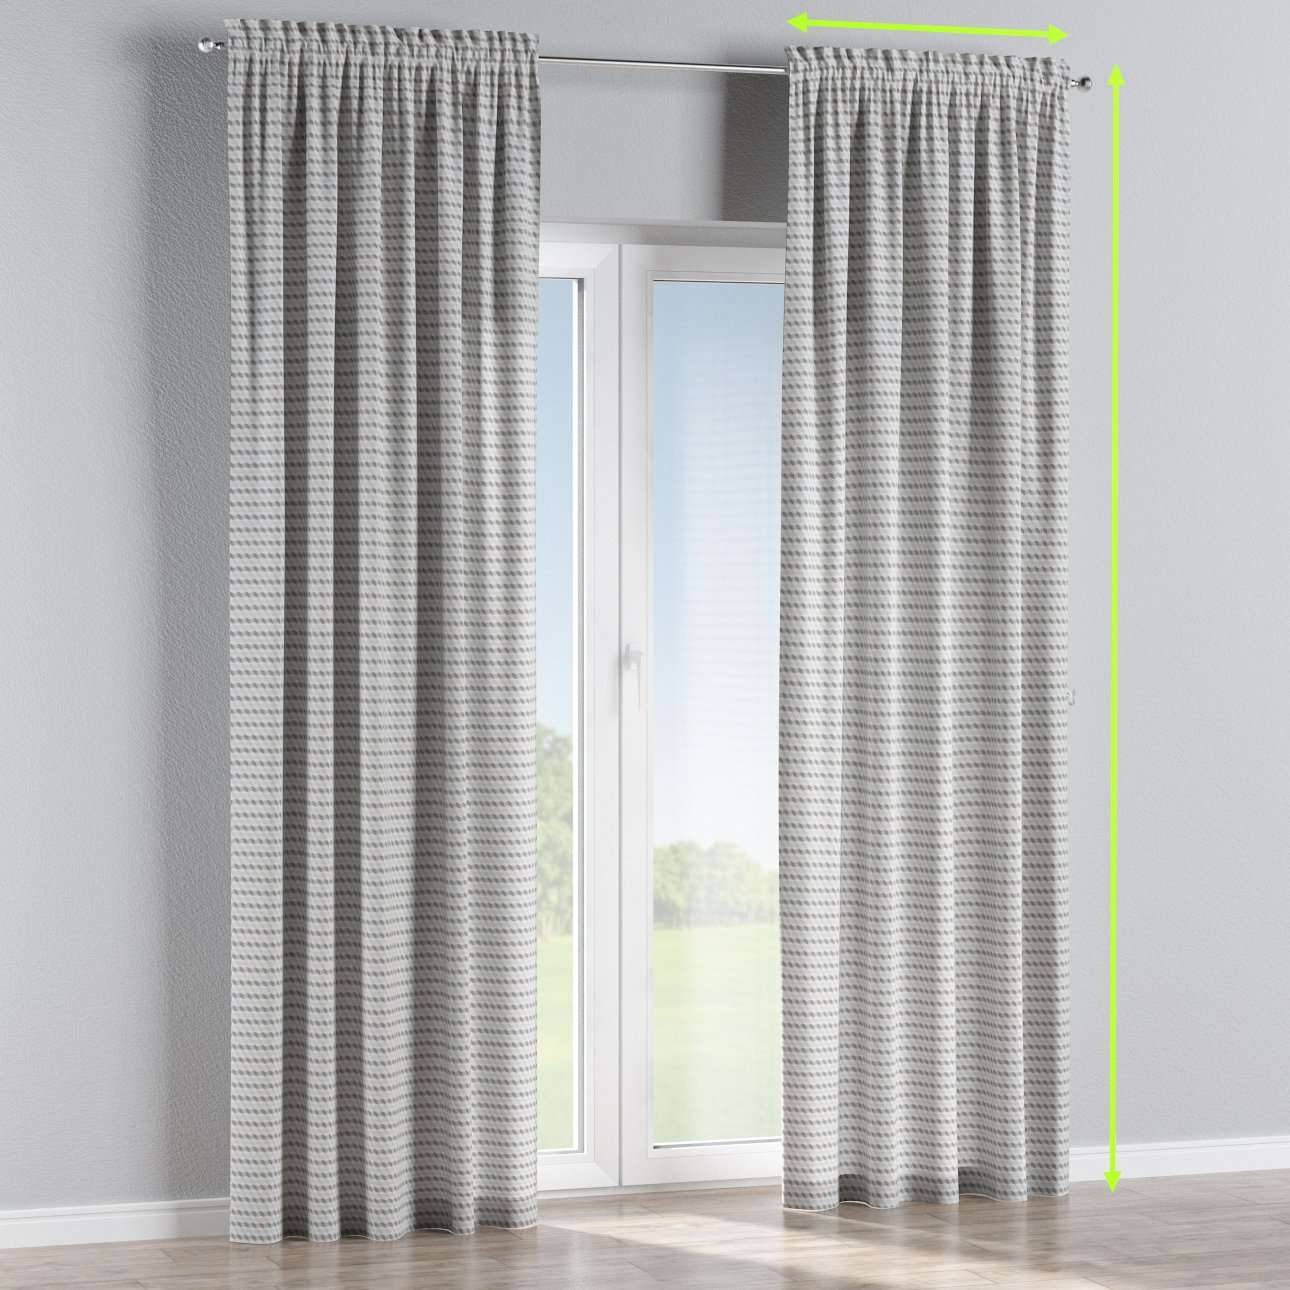 Slot and frill lined curtains in collection Rustica, fabric: 140-33